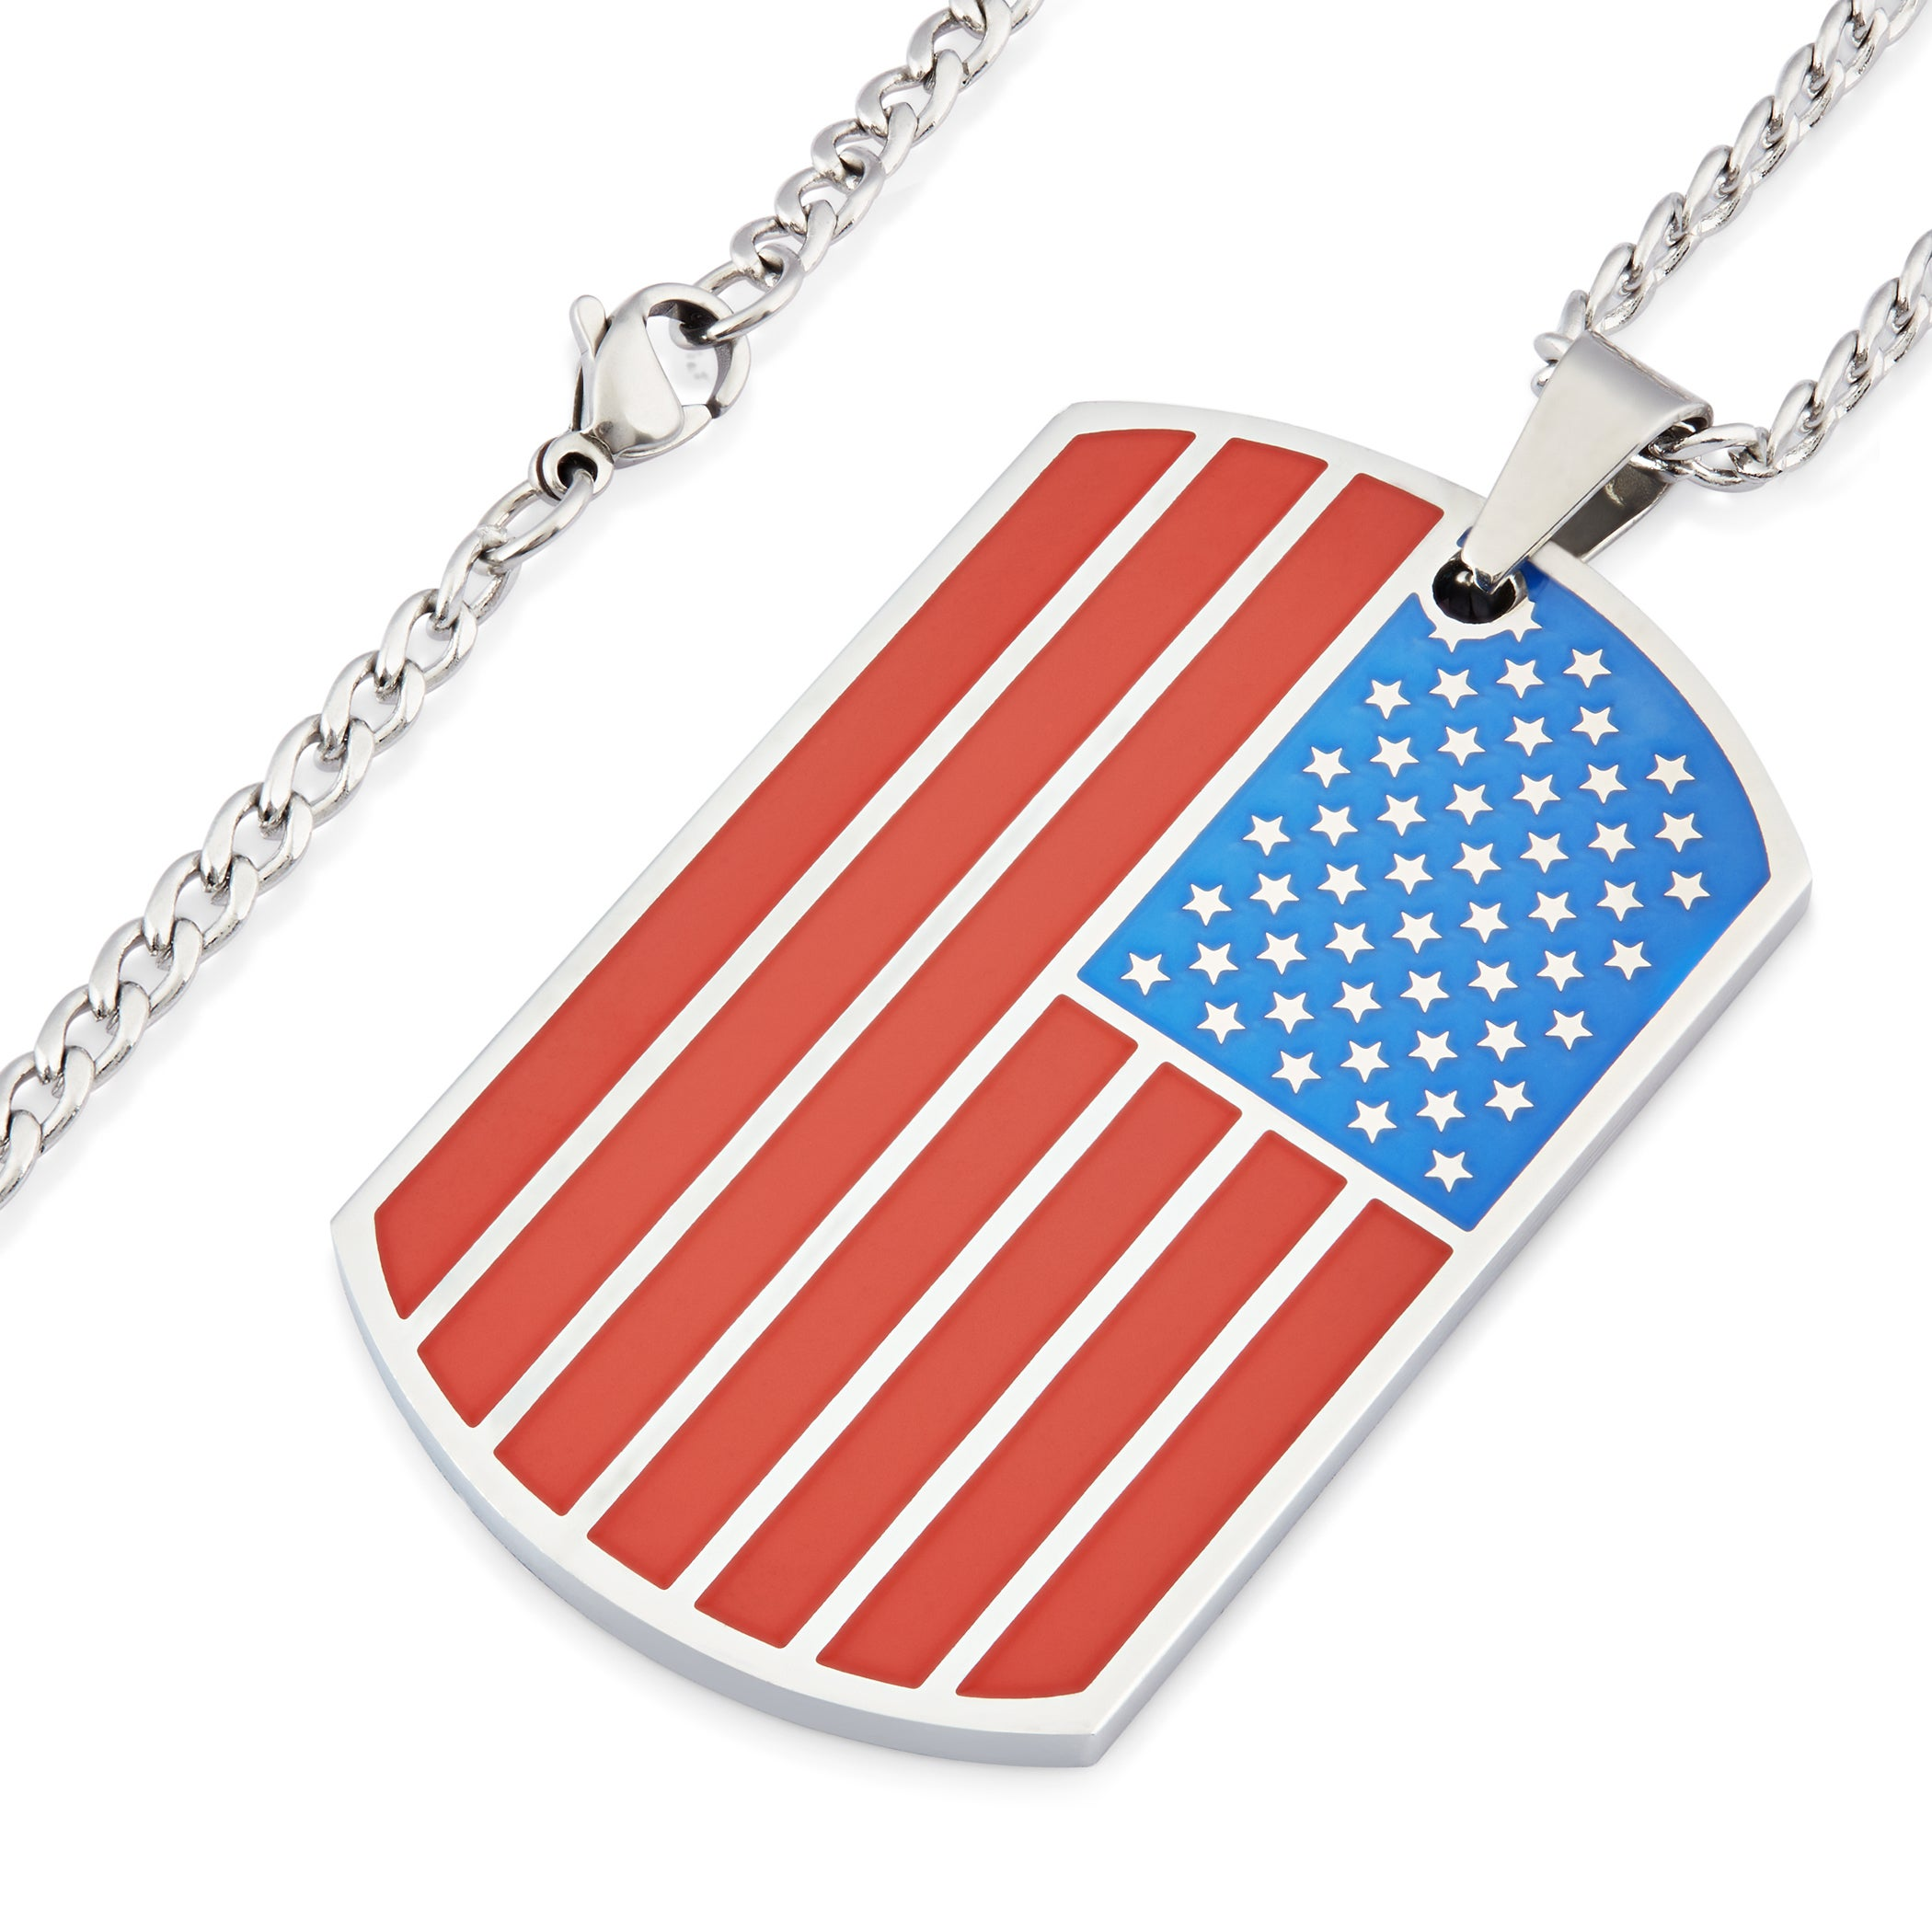 wauoca flag stars him shop necklace pendant and patriot for stripes american hypnodess